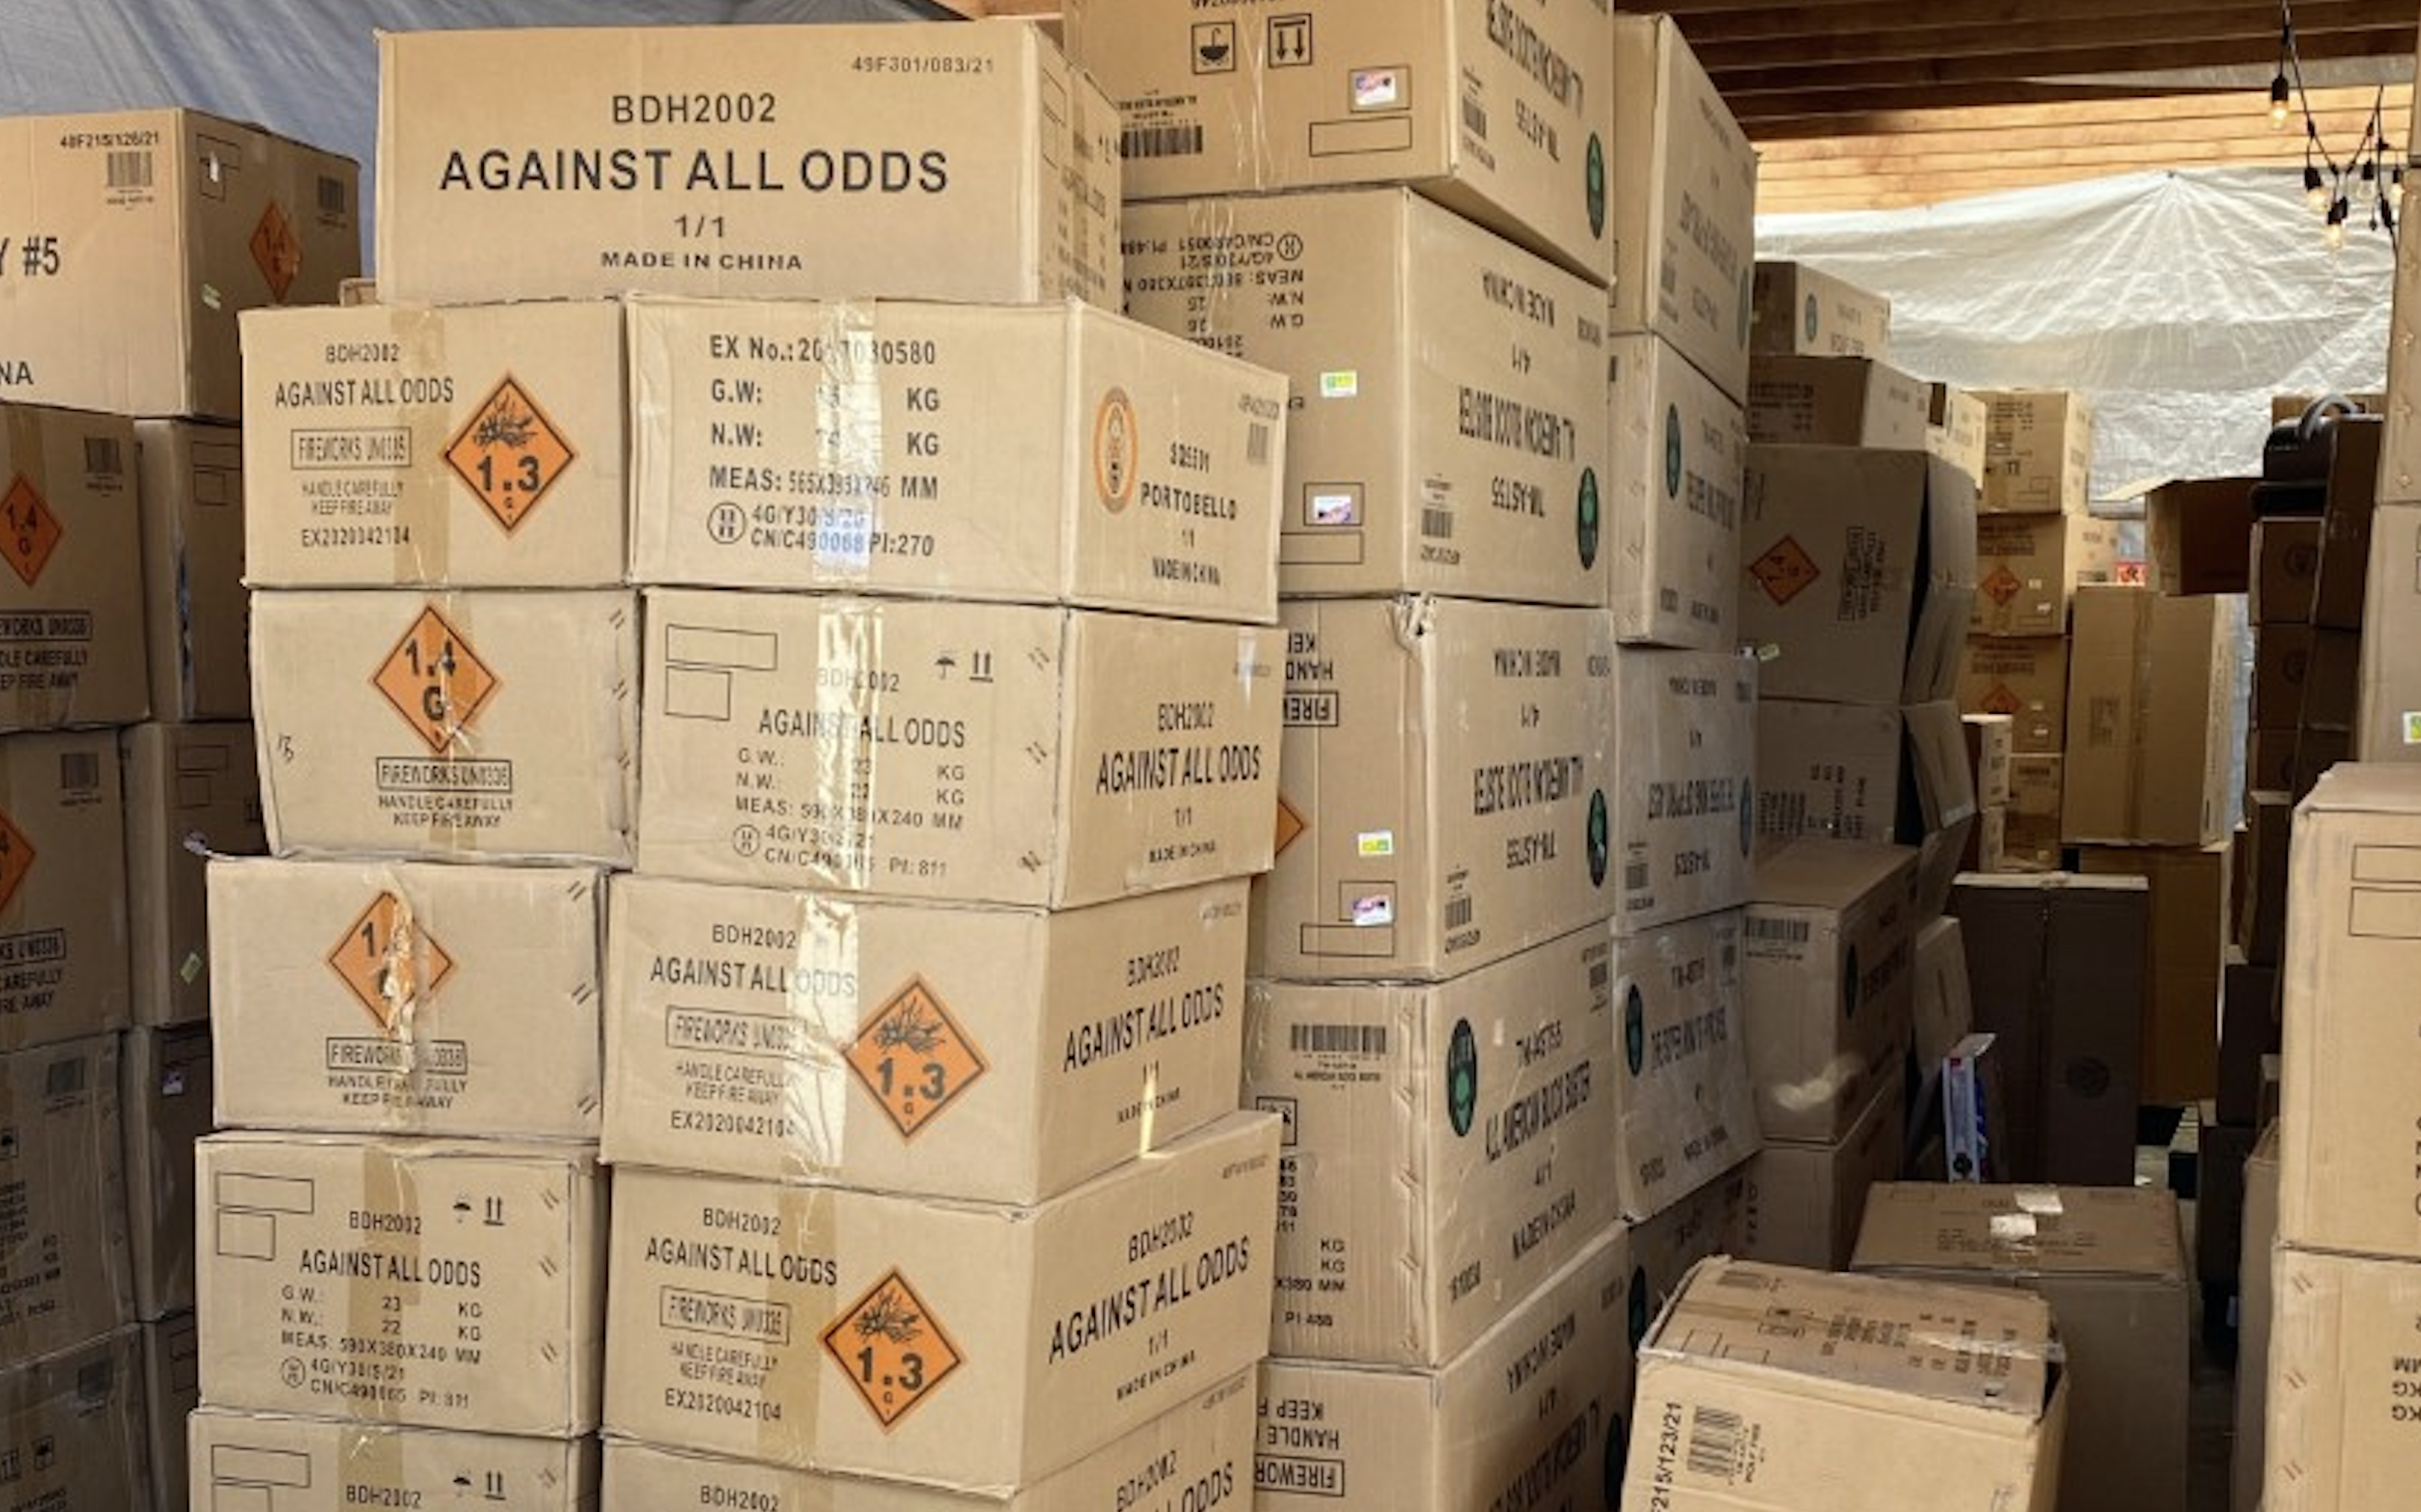 The boxes of commercial grade fireworks appear to range in weights from 13 to 29 kg/ea. LAPD said it found approximately 500 such boxes. Source: LAPD